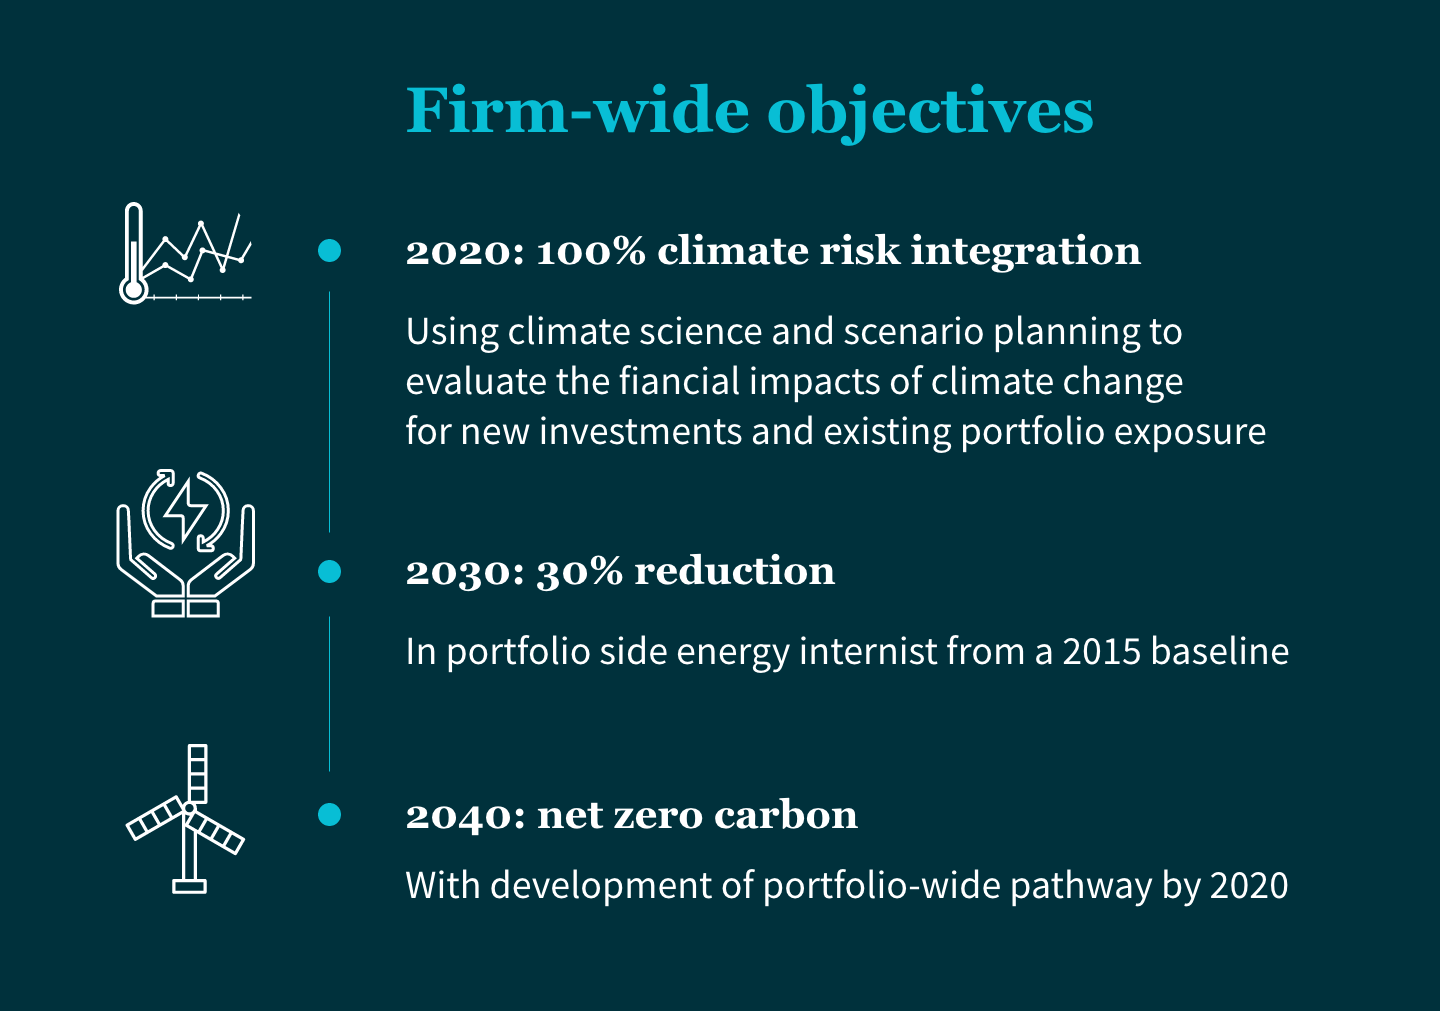 Graphic outlining firm-wide objectives